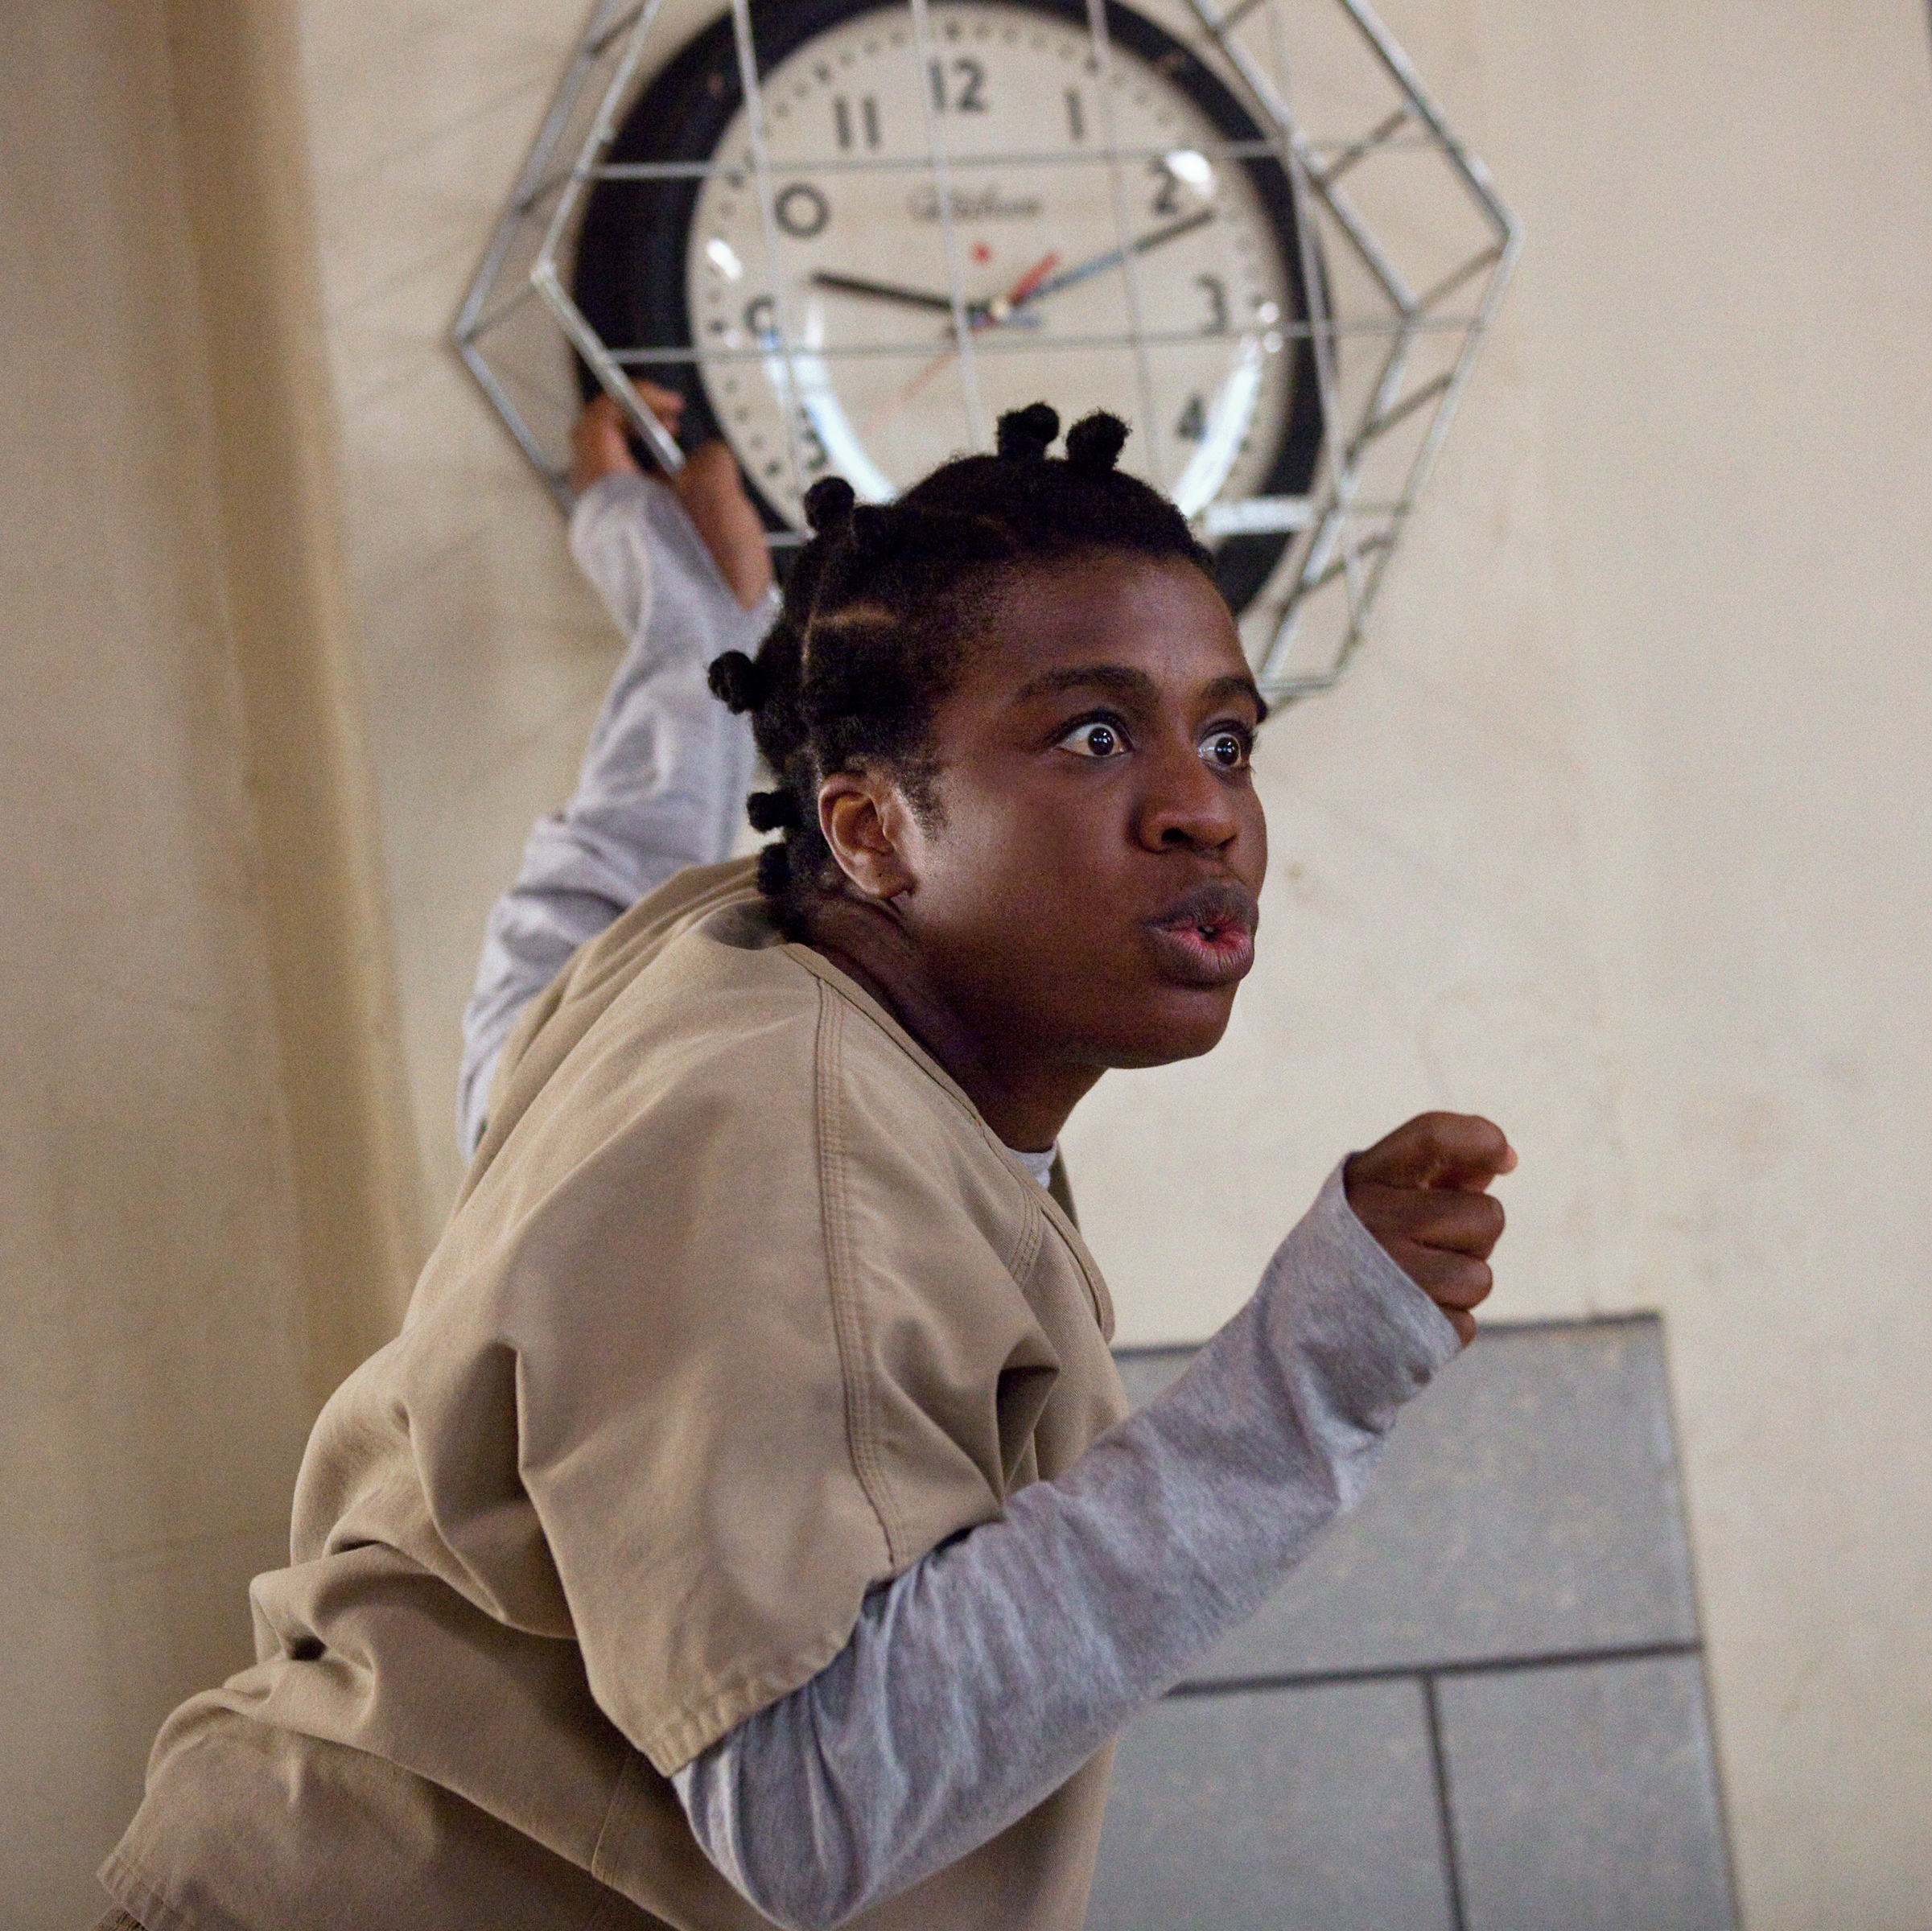 Uzo Aduba as 'Crazy Eyes' in the new season of Orange Is The New Black.